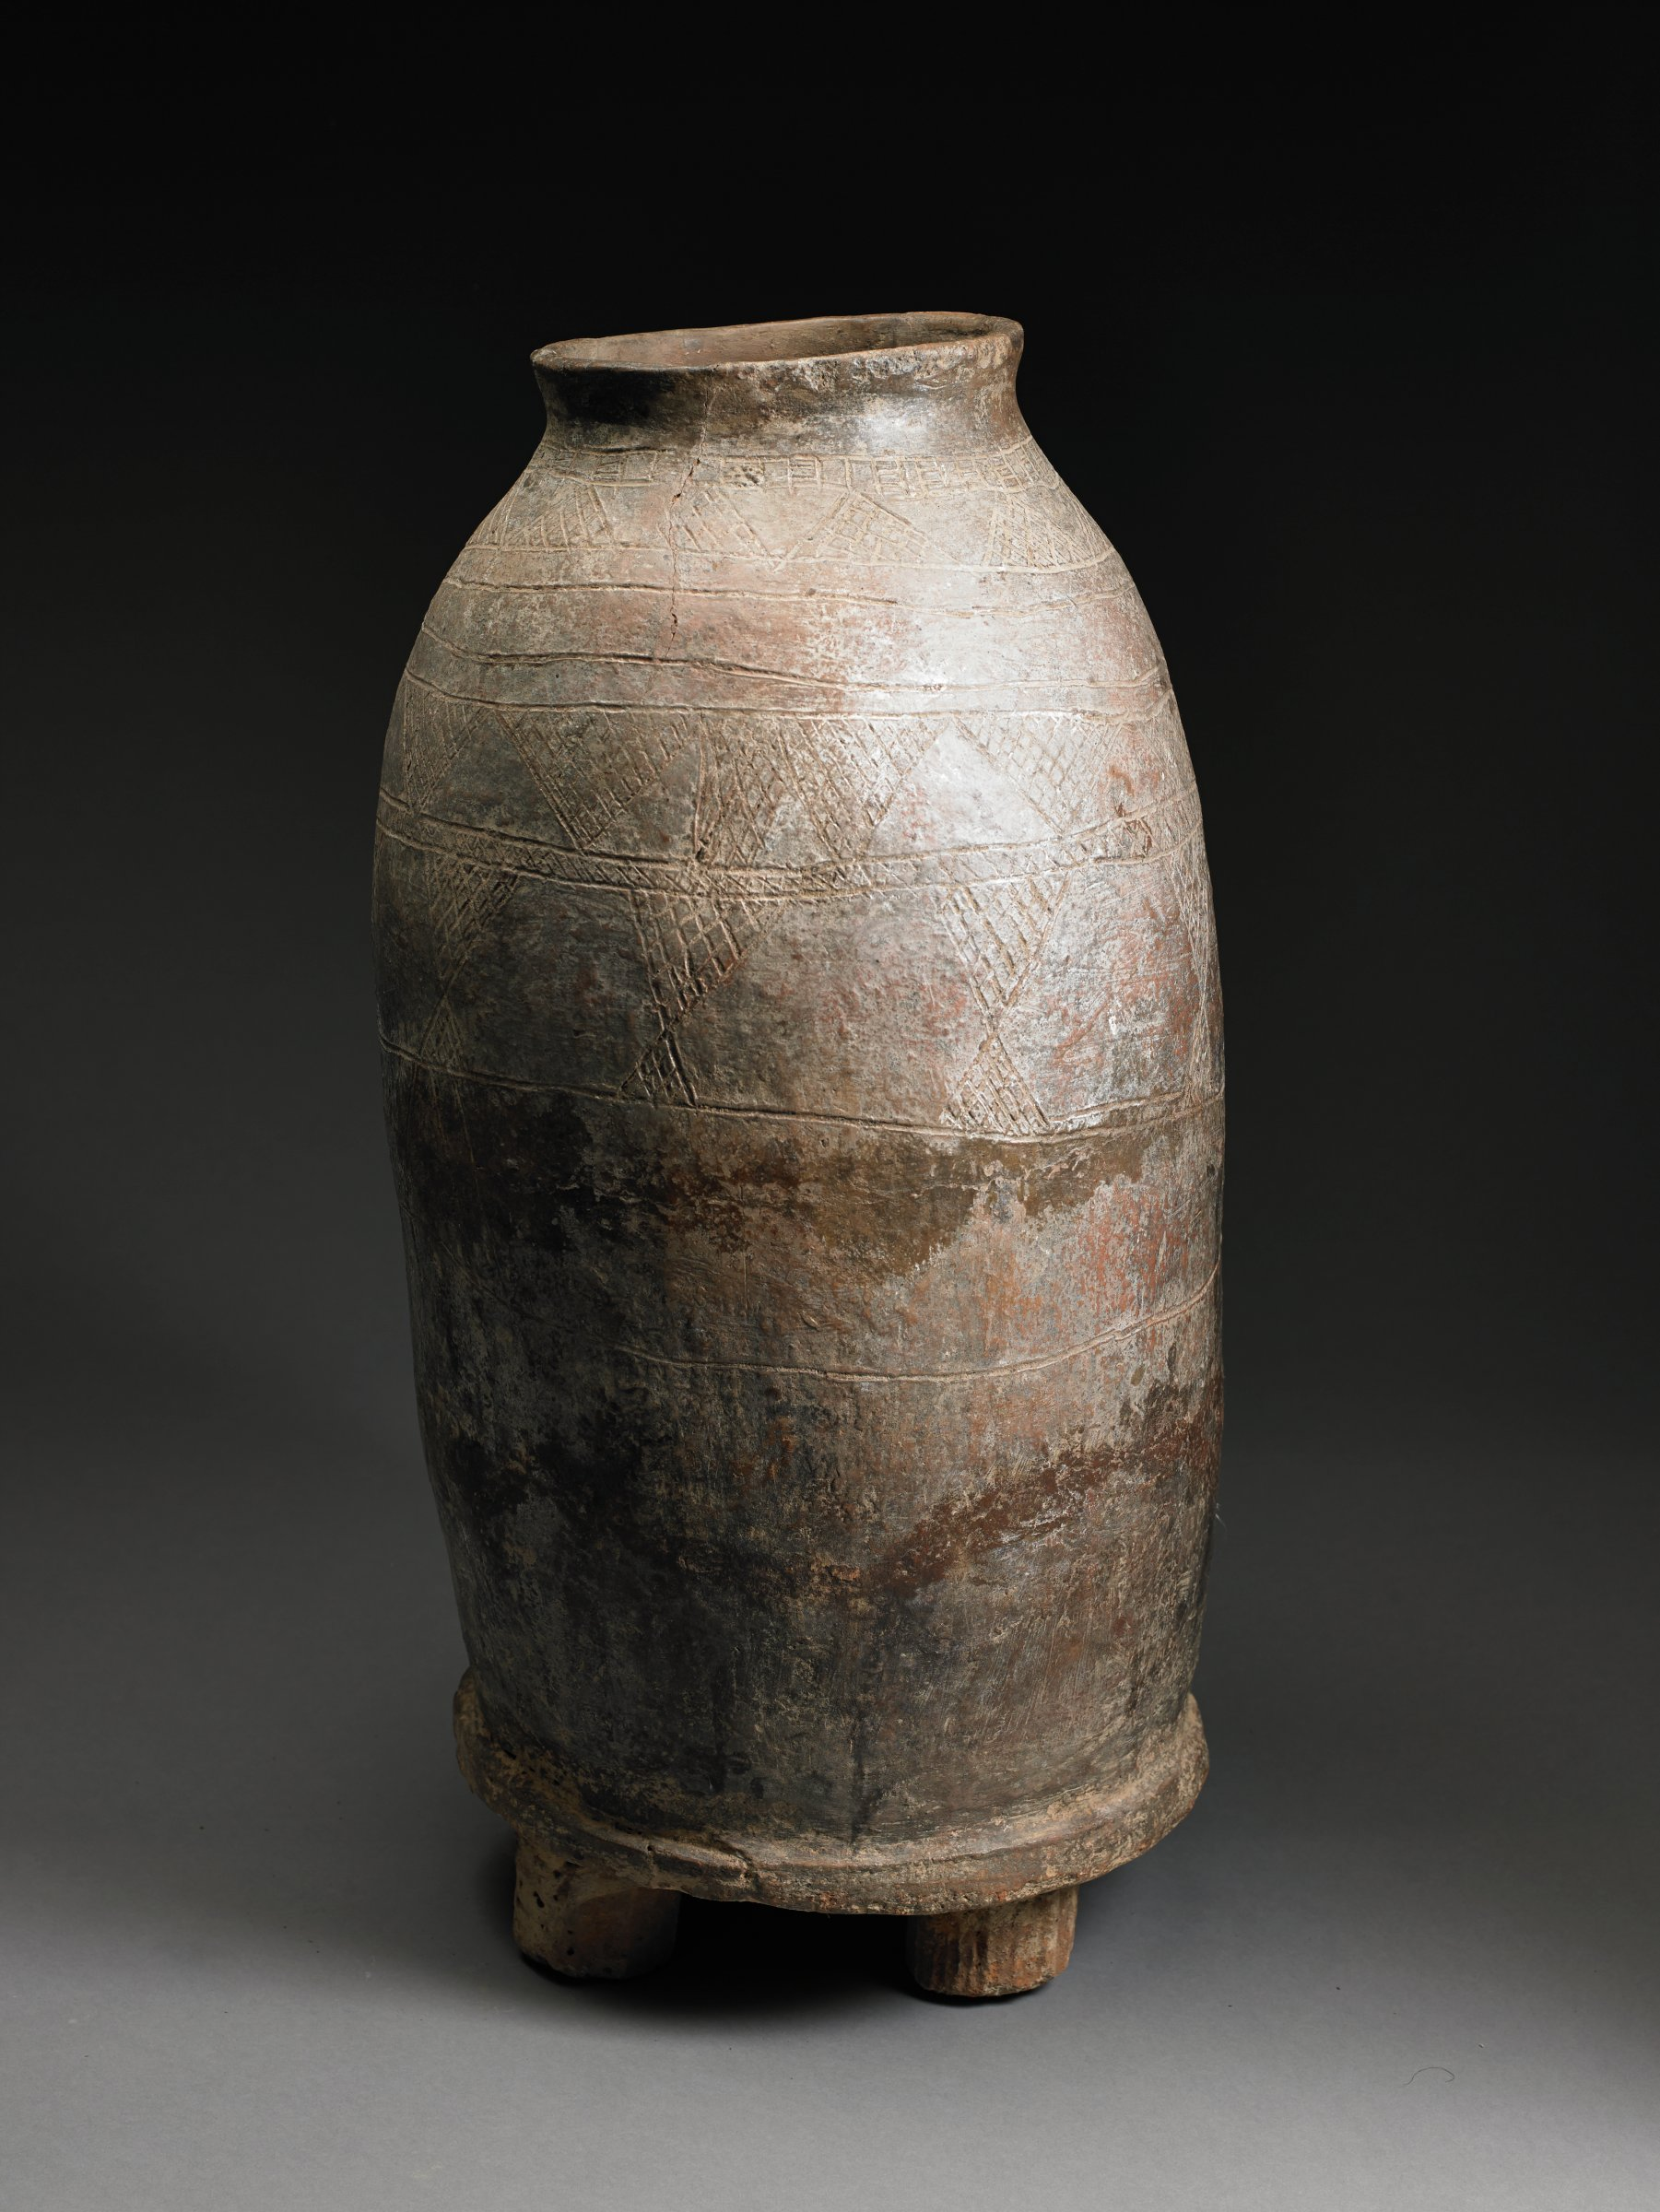 Brownish-gray vertical vessel has short neck with narrow mouth. Flat bottom rests on short legs. Body of vessel adorned with incised triangles filled with diamond patterns.